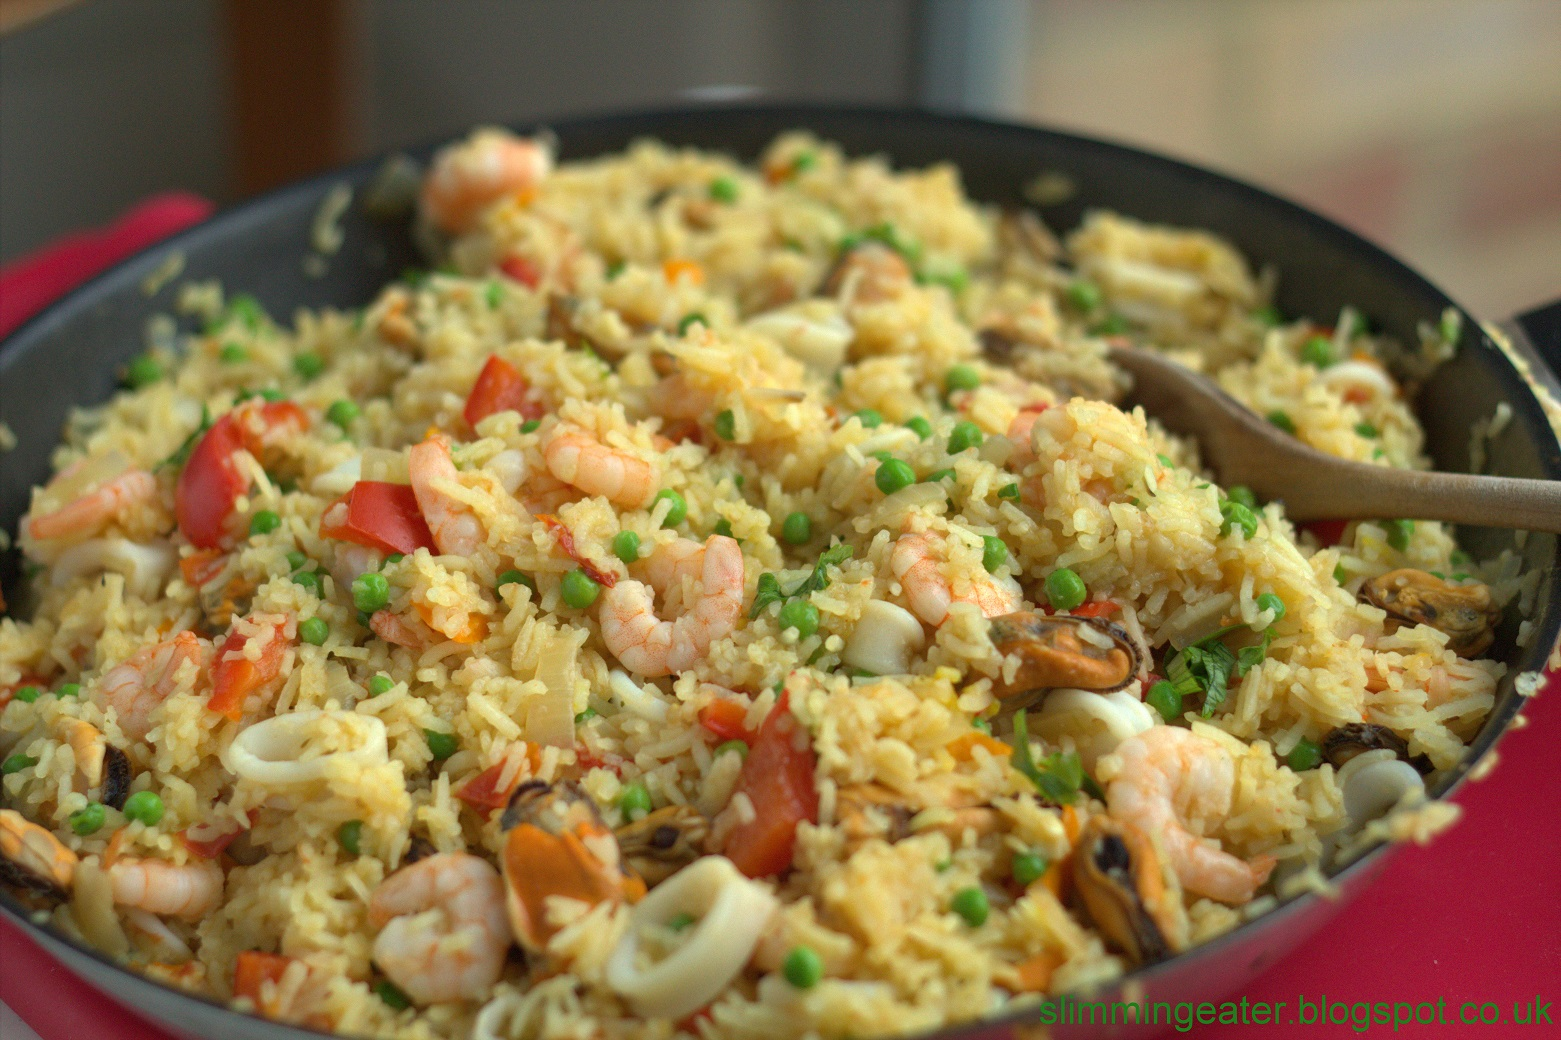 Slimmingeater The Perfect Paella: slimming world recipes for 1 person